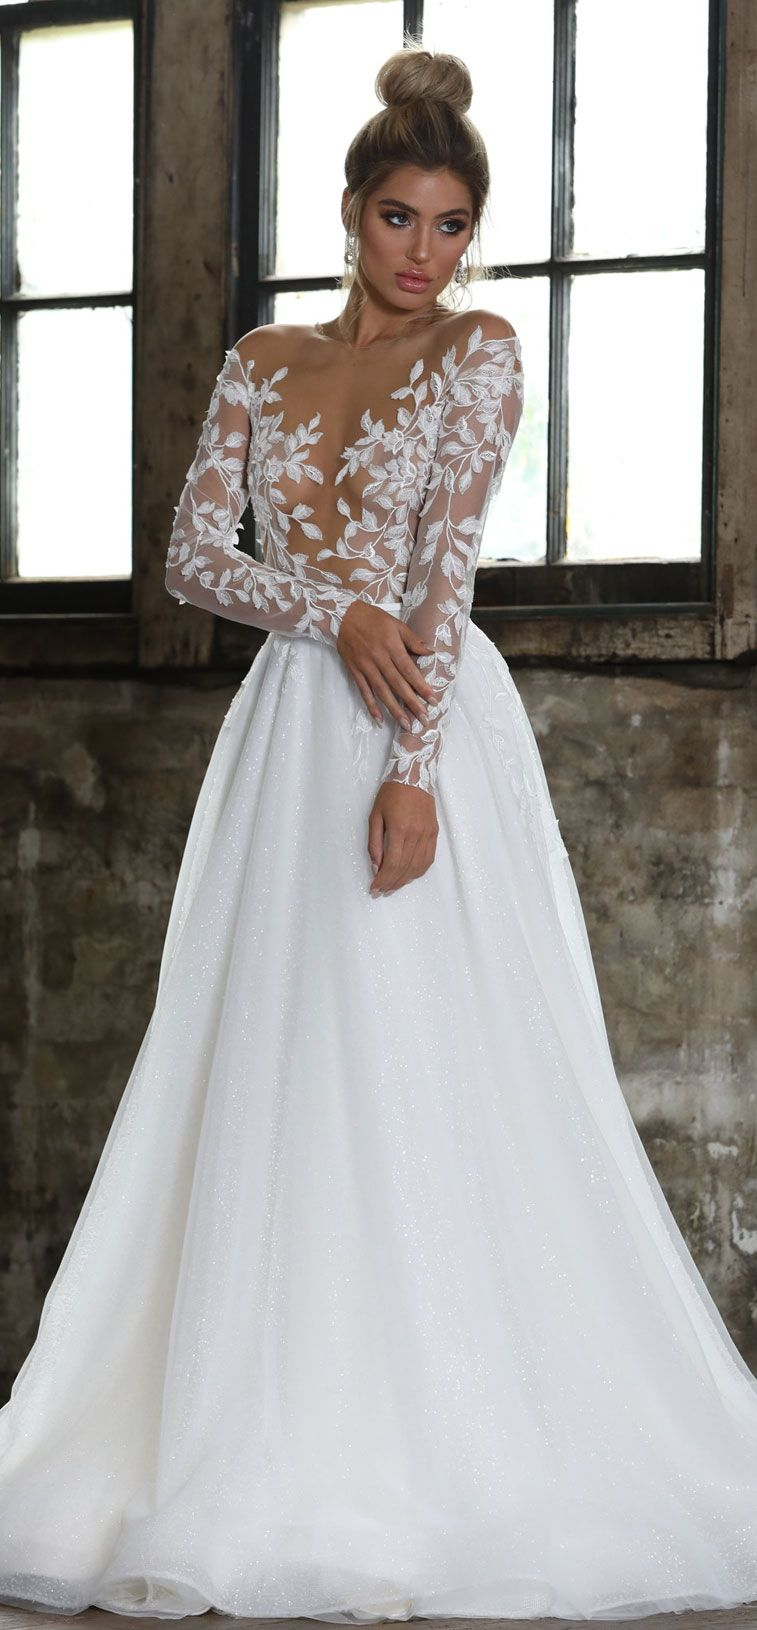 55 Long sleeve wedding dresses for fashion forward brides